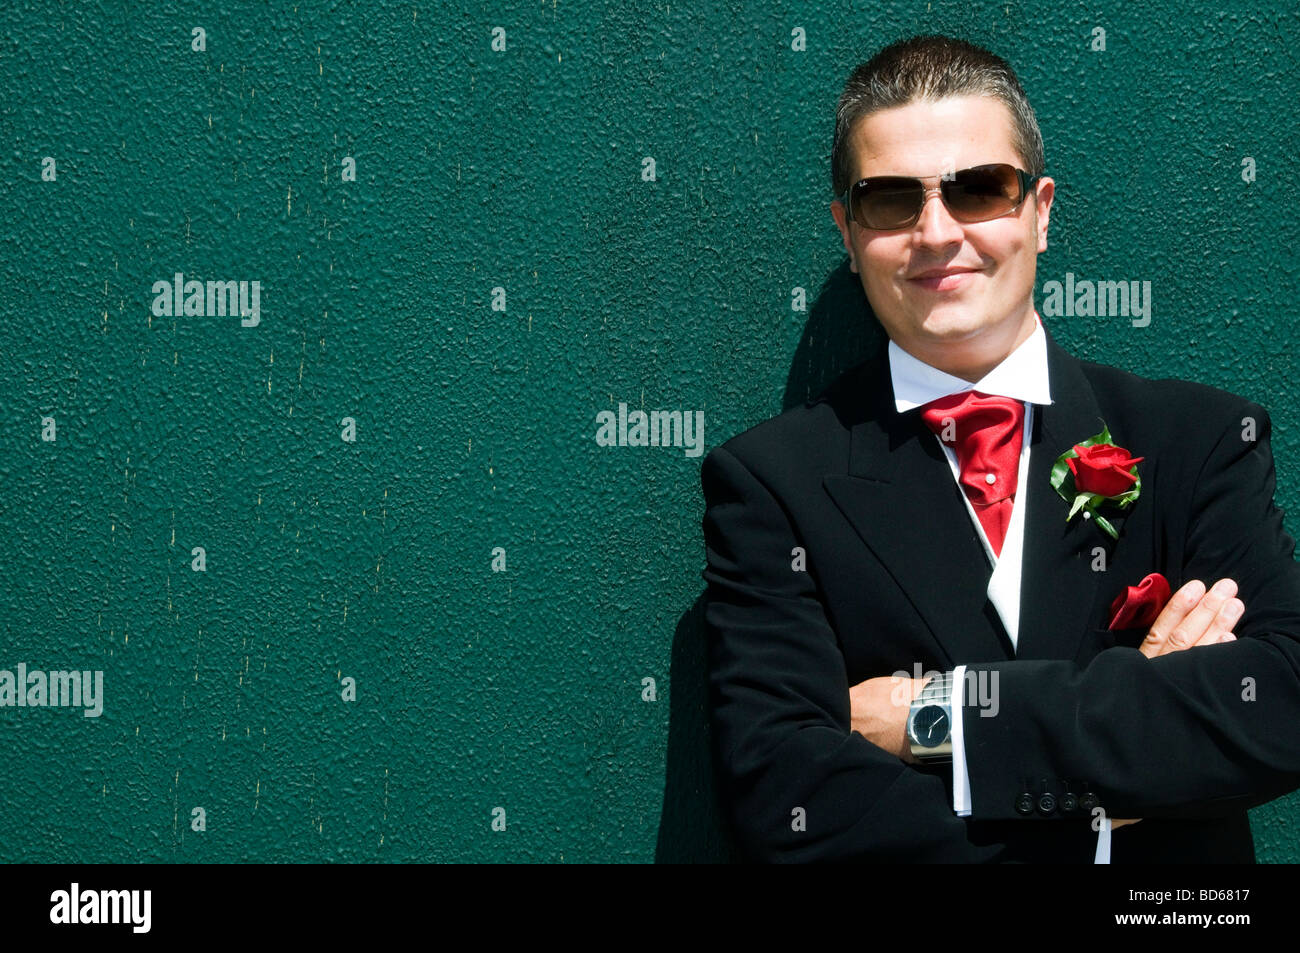 Wedding Suits Stock Photos & Wedding Suits Stock Images - Alamy